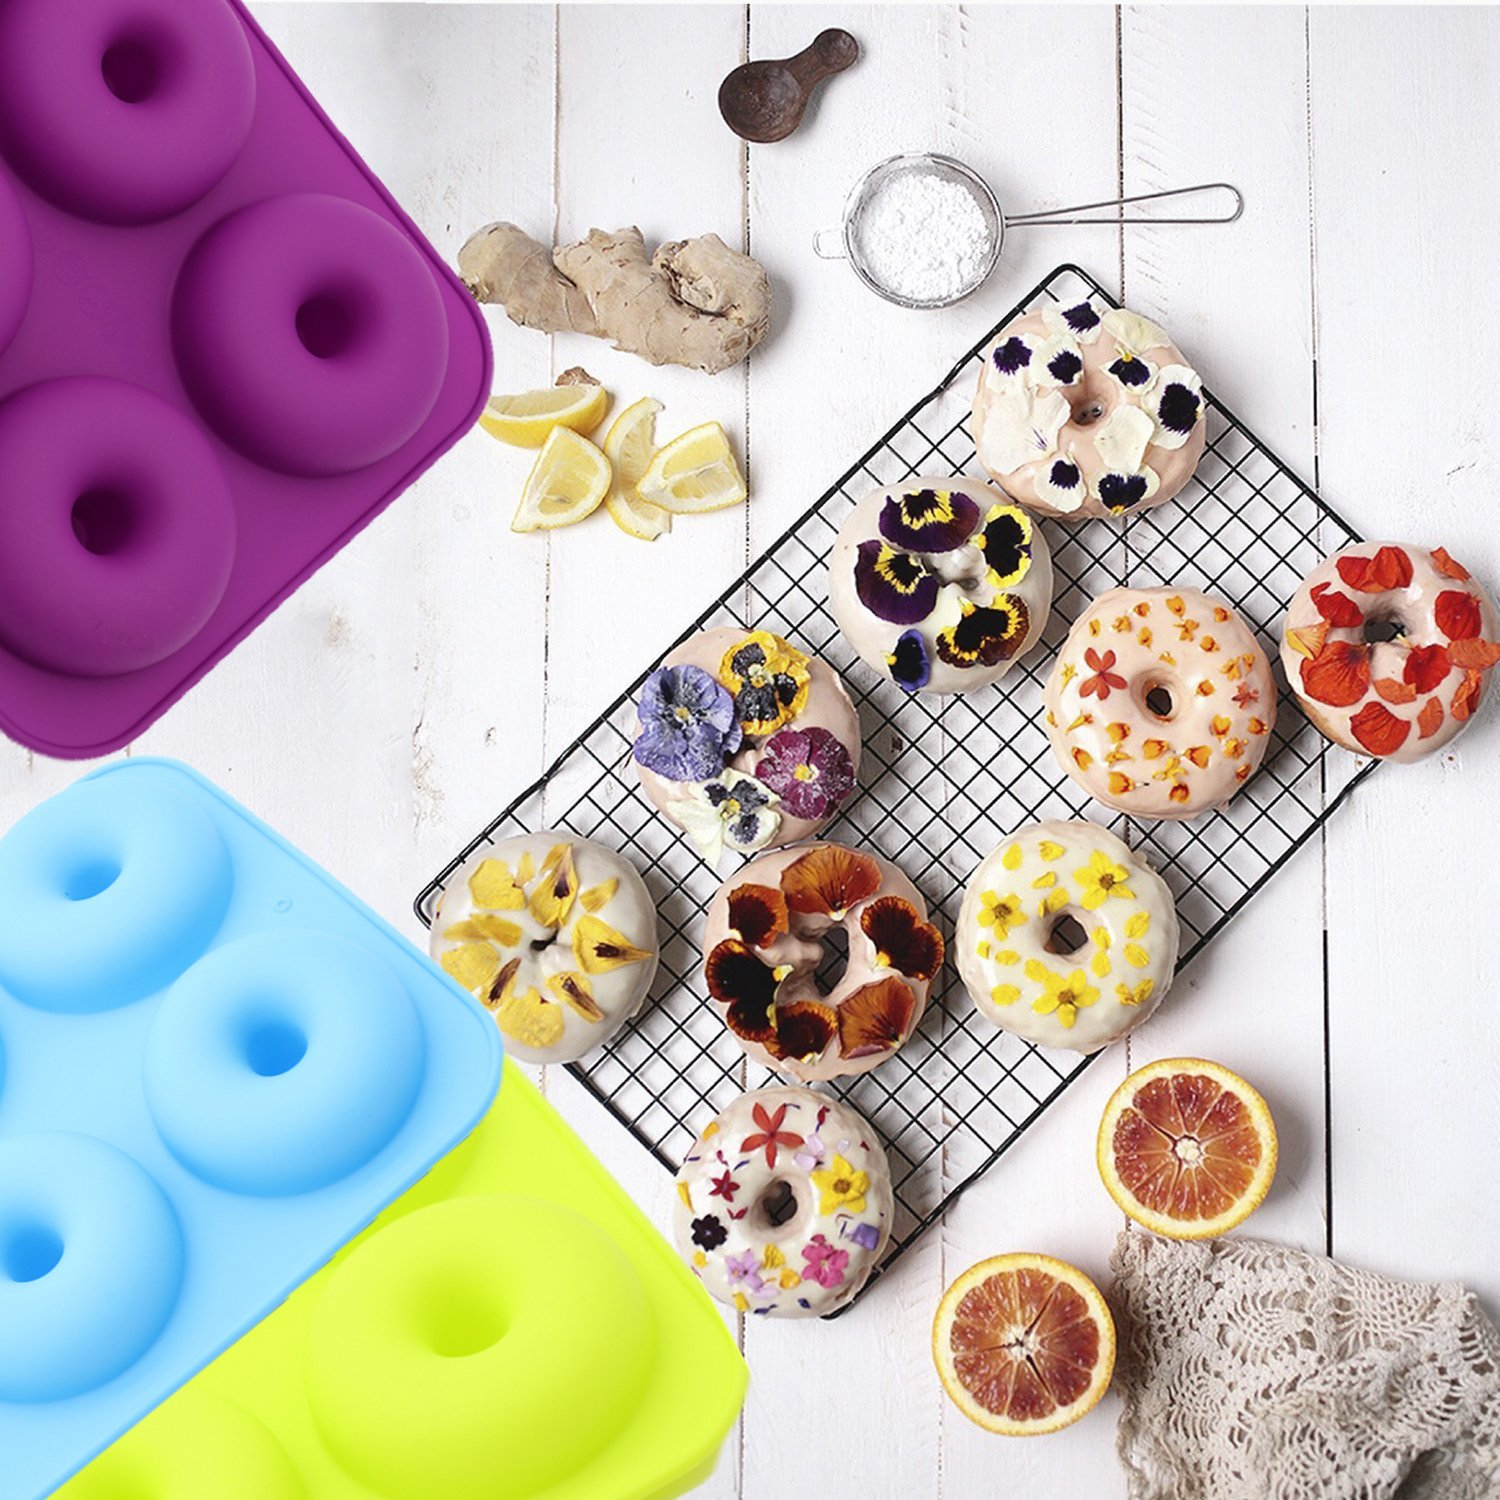 Ainko Donut Pan,6 Cup Non-Stick Baking Molds Set of 3 Silicone Baking Molds for Donuts,Durable Baking Kitchen Accessories Easy to Clean by Ainko (Image #3)